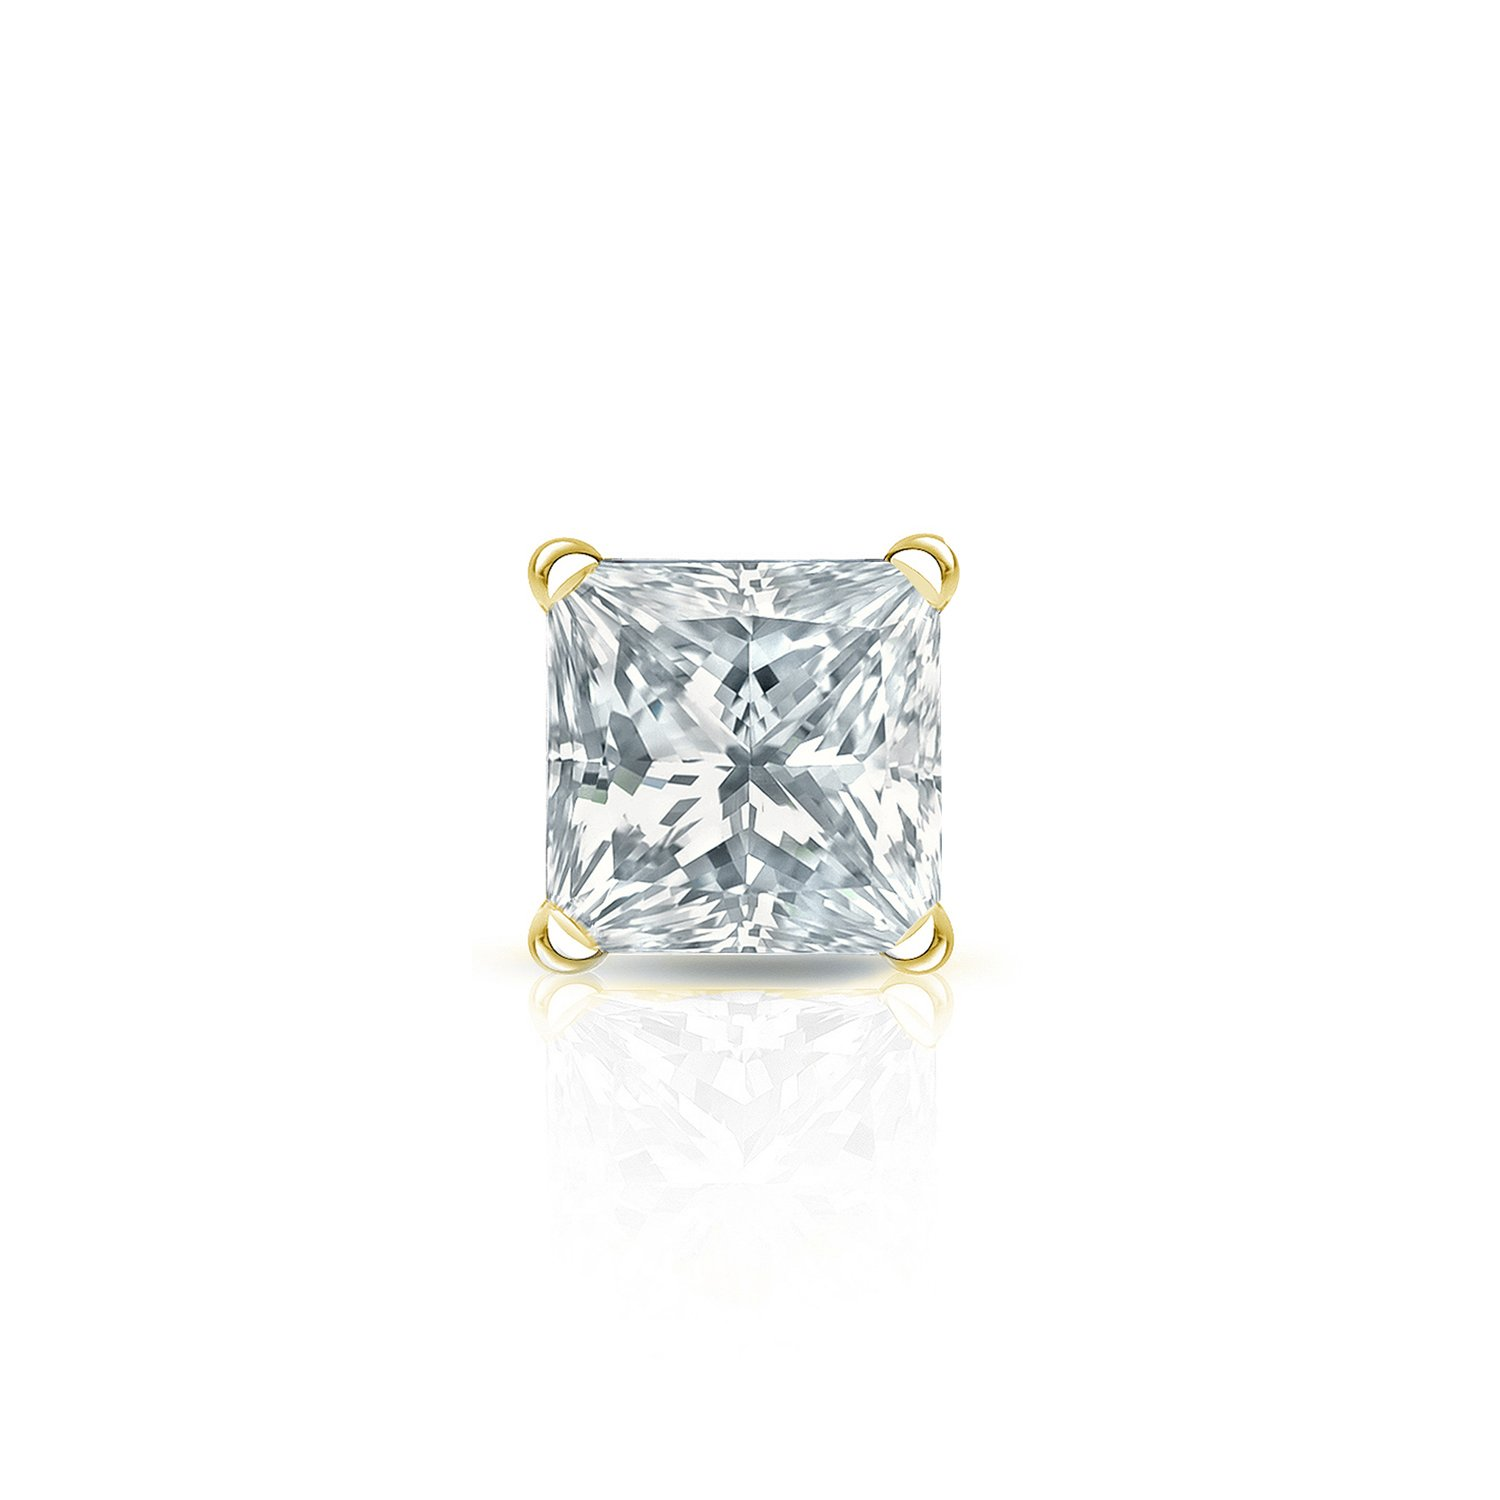 14k Yellow Gold Princess Diamond Simulant CZ SINGLE STUD Earring 4Prong 1//8-1ct,Excellent Quality